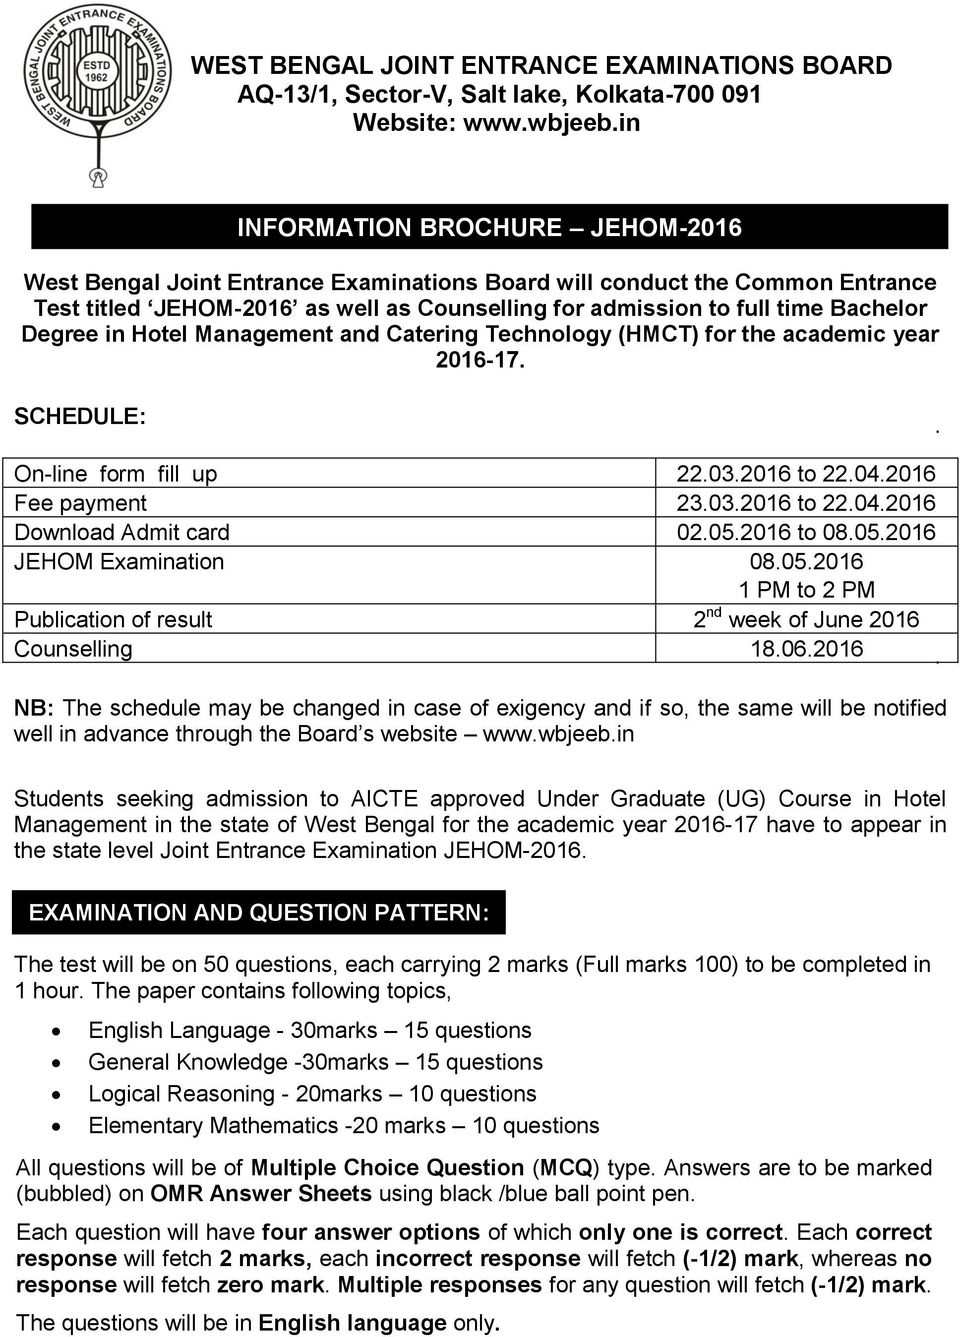 Catering Technology (HMCT) for the academic year 2016-17. SCHEDULE: INFORMATION BROCHURE JEHOM-2016 On-line form fill up 22.03.2016 to 22.04.2016 Fee payment 23.03.2016 to 22.04.2016 Download Admit card 02.